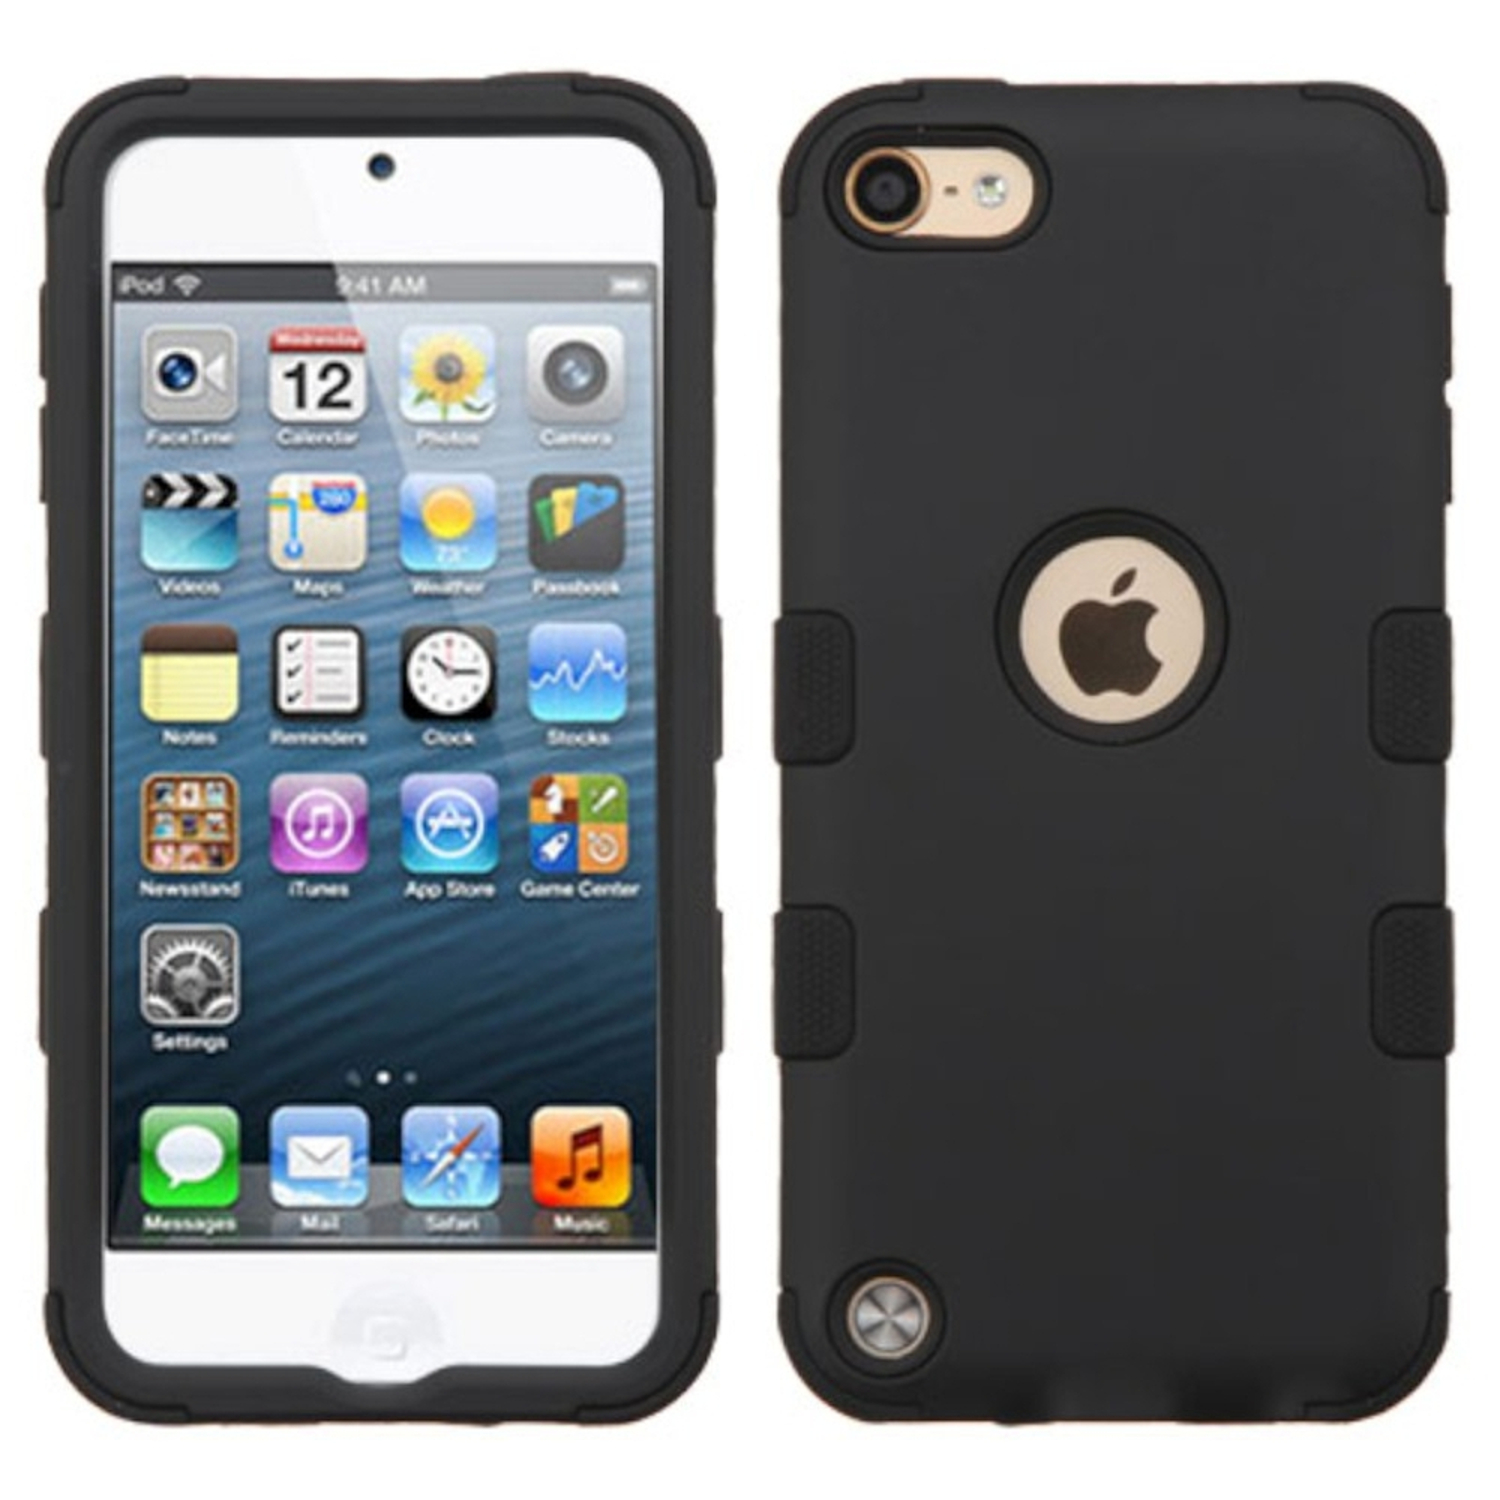 iPod Touch 6th Generation Case, iPod Touch 5th Generation Case, by Insten Tuff Hard Dual Layer Hybrid Case For Apple iPod Touch 6th 5th Gen case cover